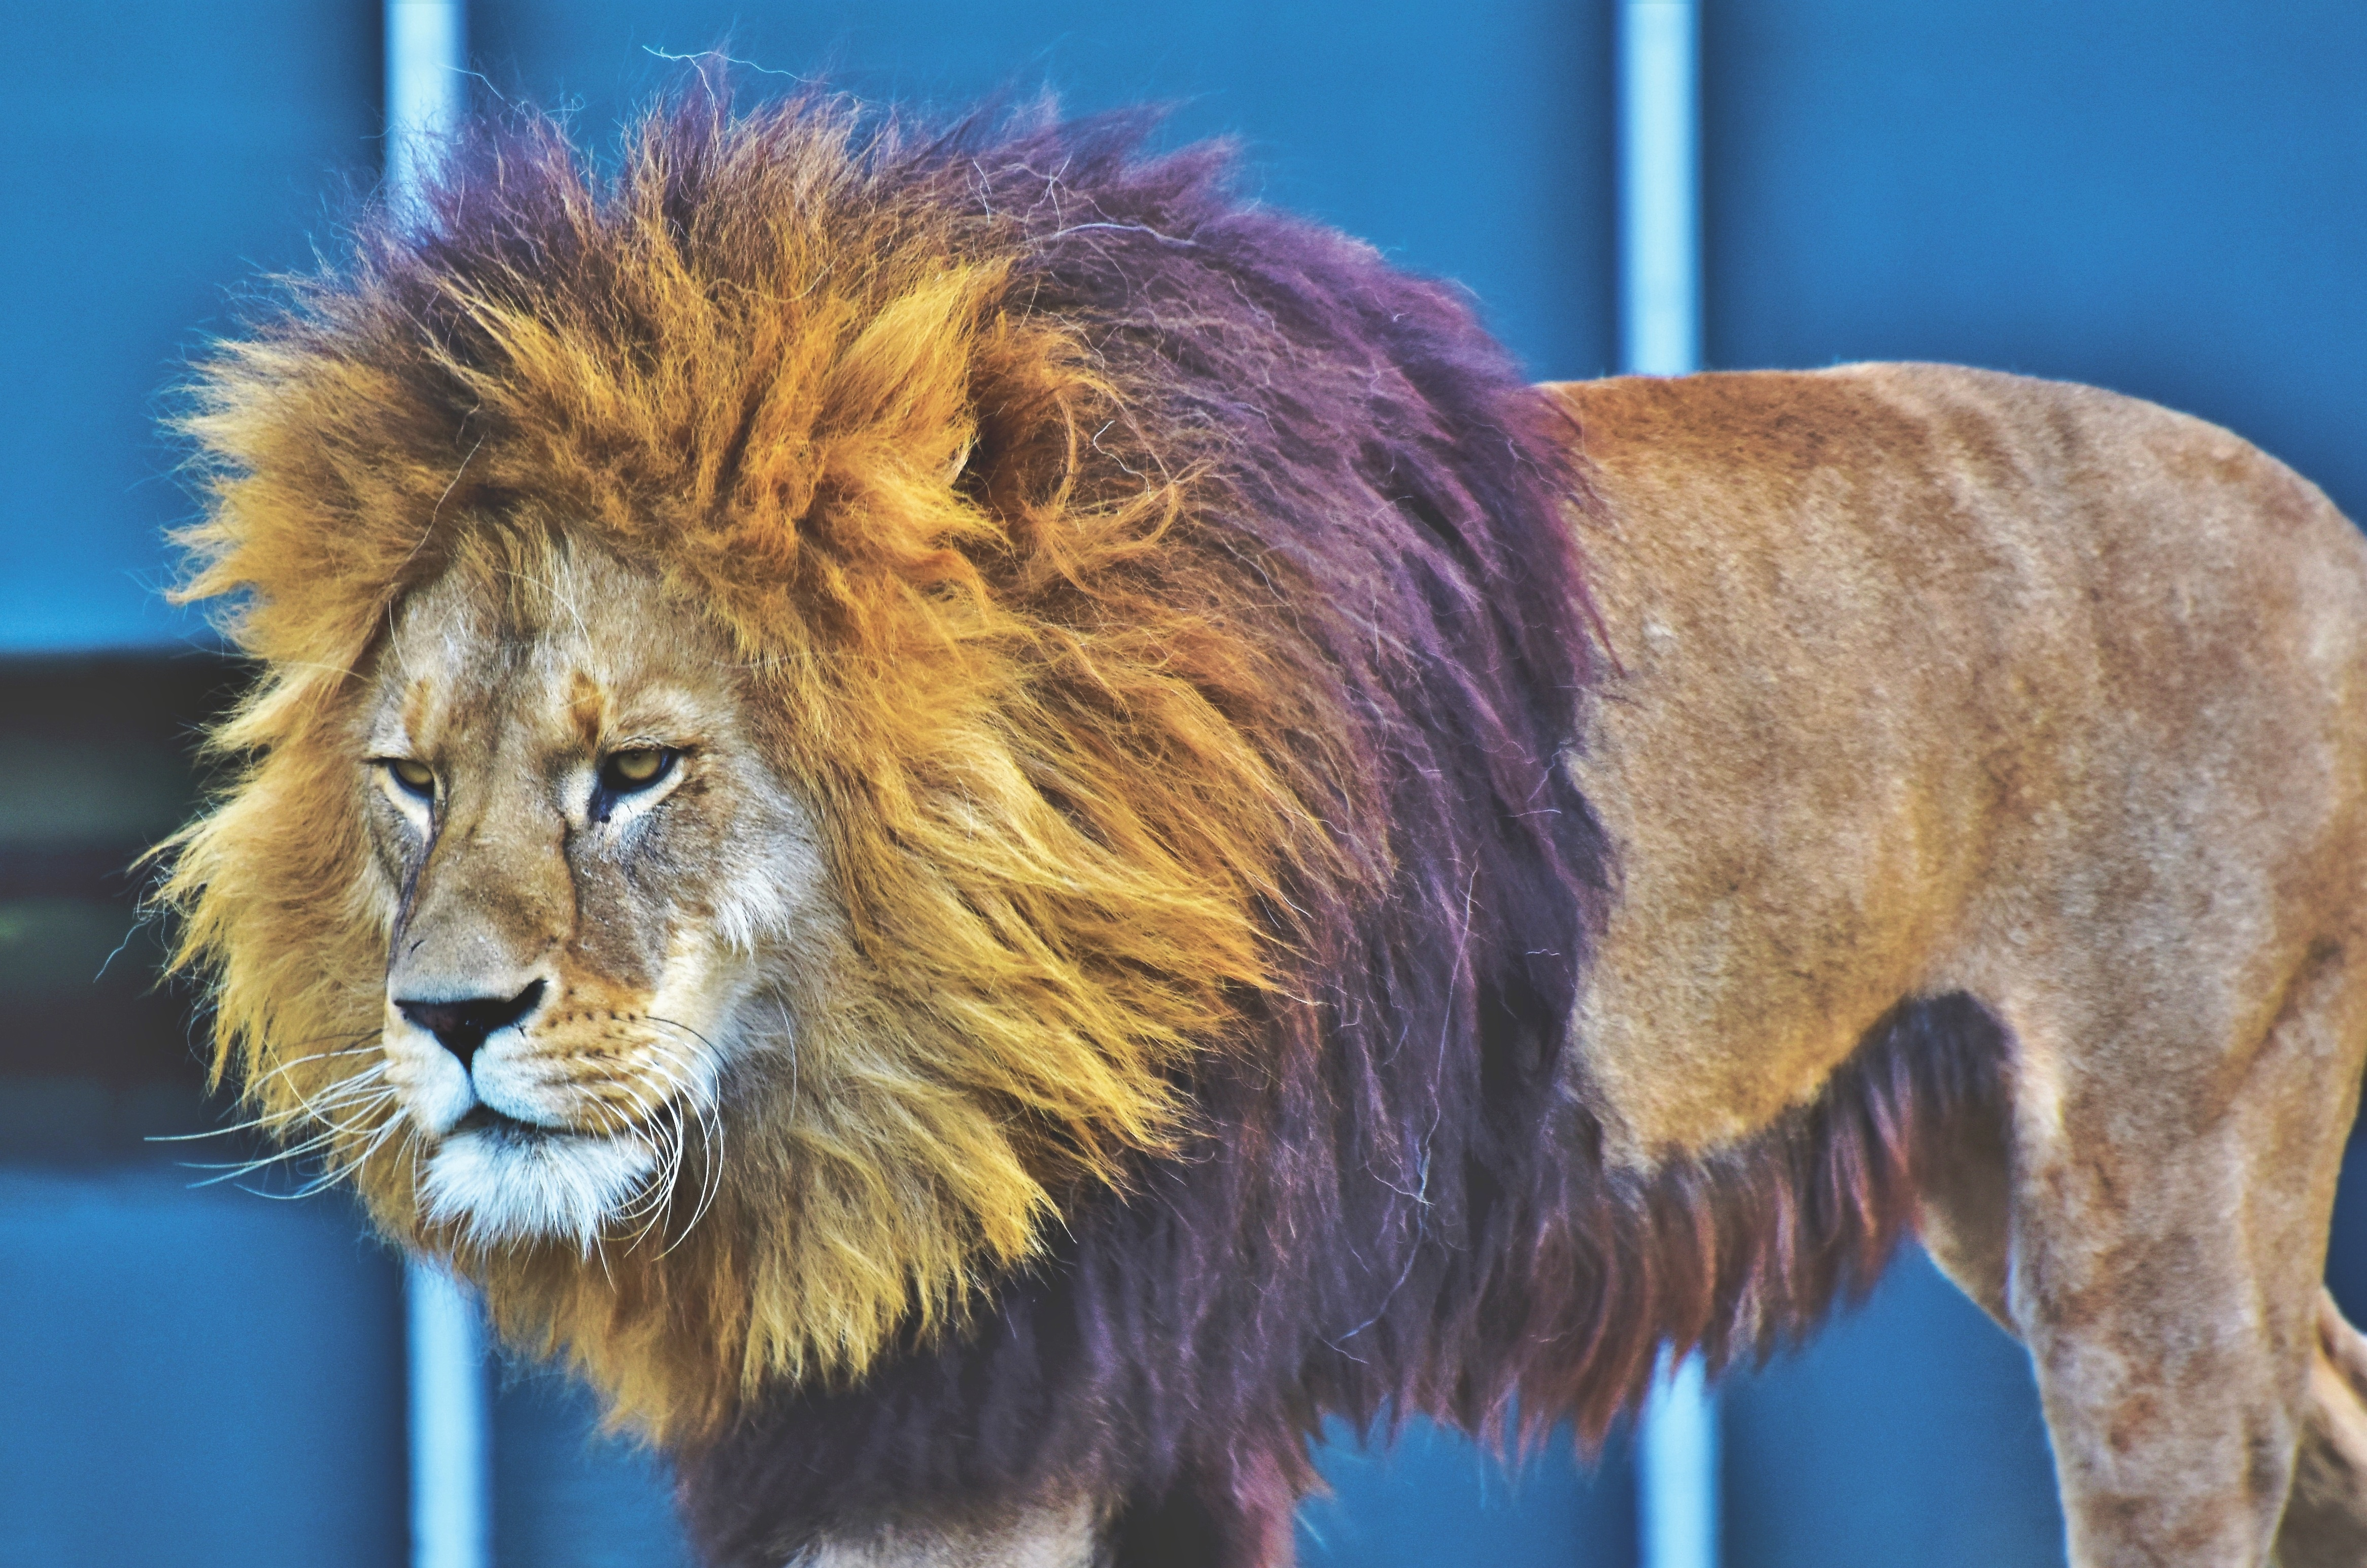 72941 download wallpaper Animals, Lion, Predator, King Of Beasts, King Of The Beasts, Mane, Serious screensavers and pictures for free